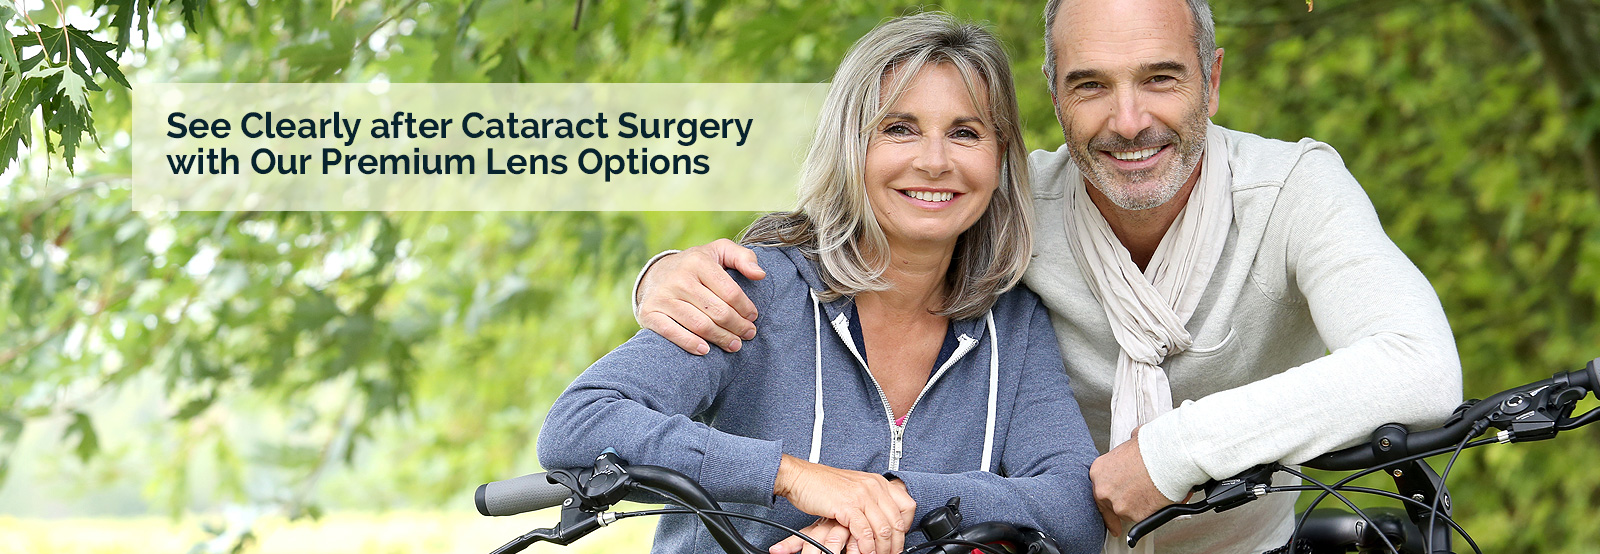 See Clearly After Cataract Surgery with Premium Lens Options